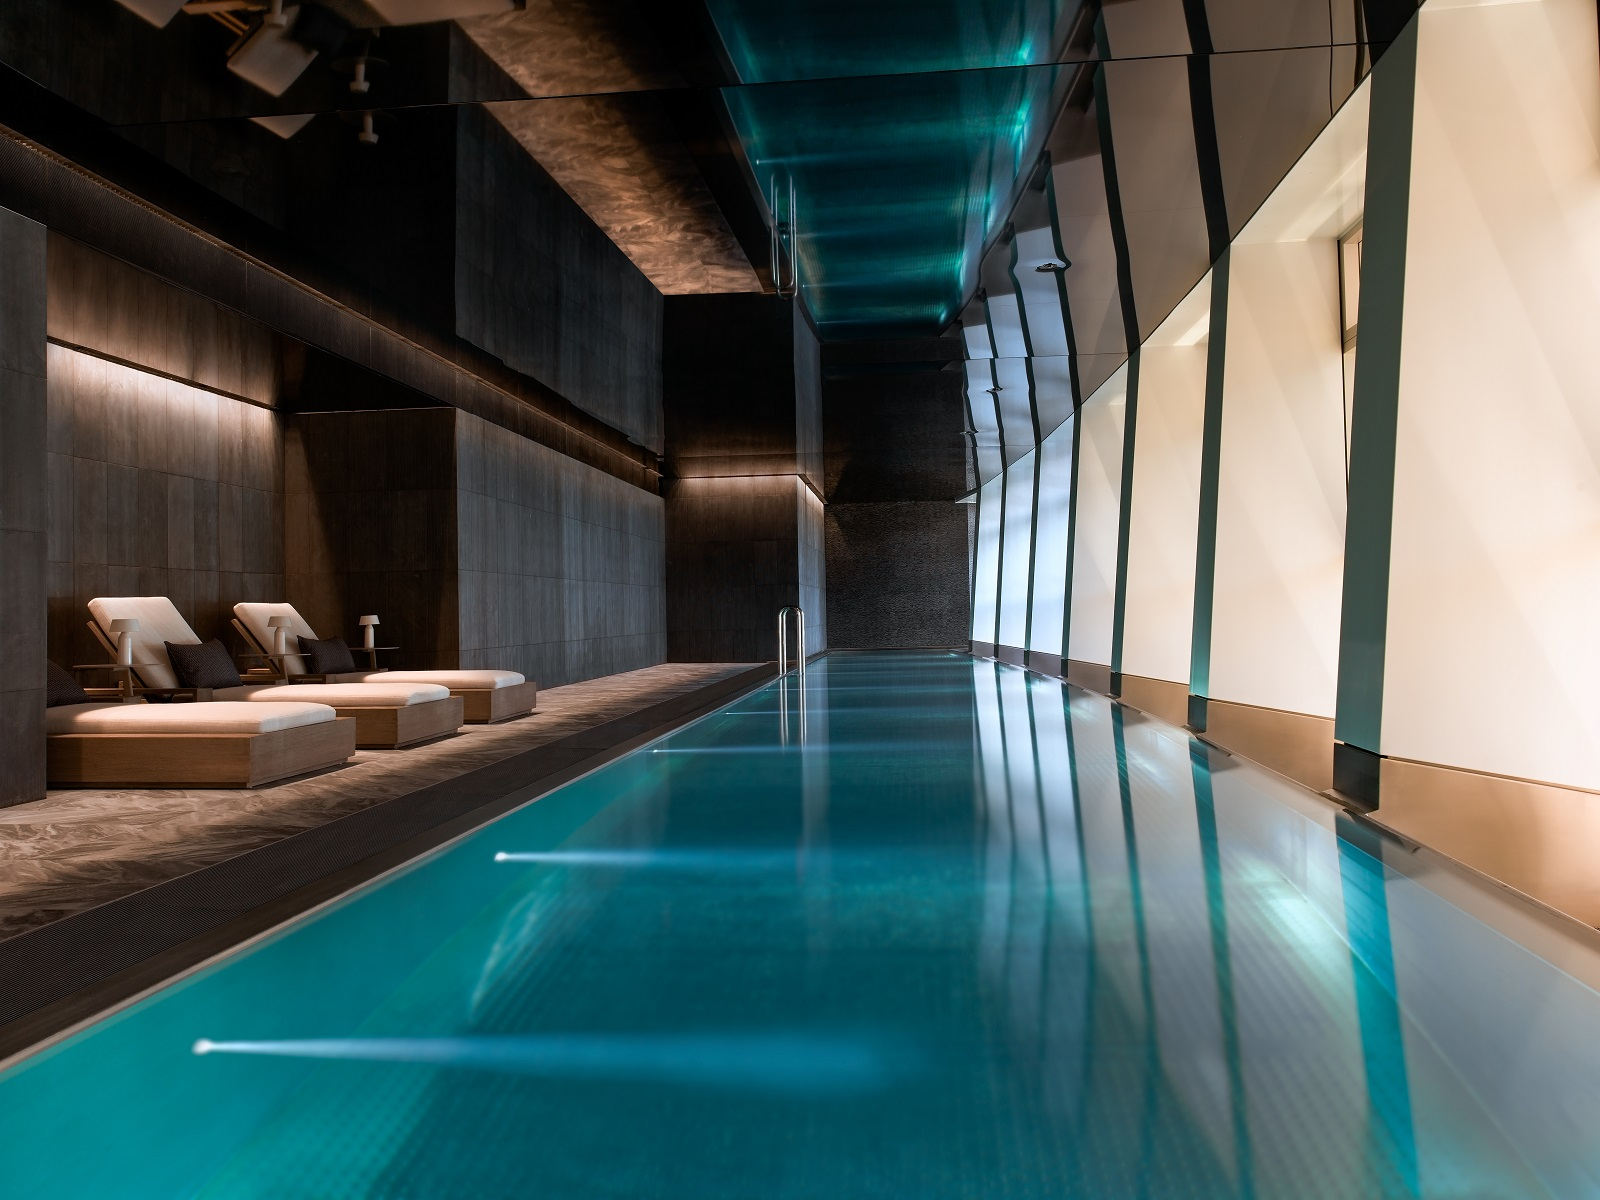 Pool in Centre Point with Windows New Development in London